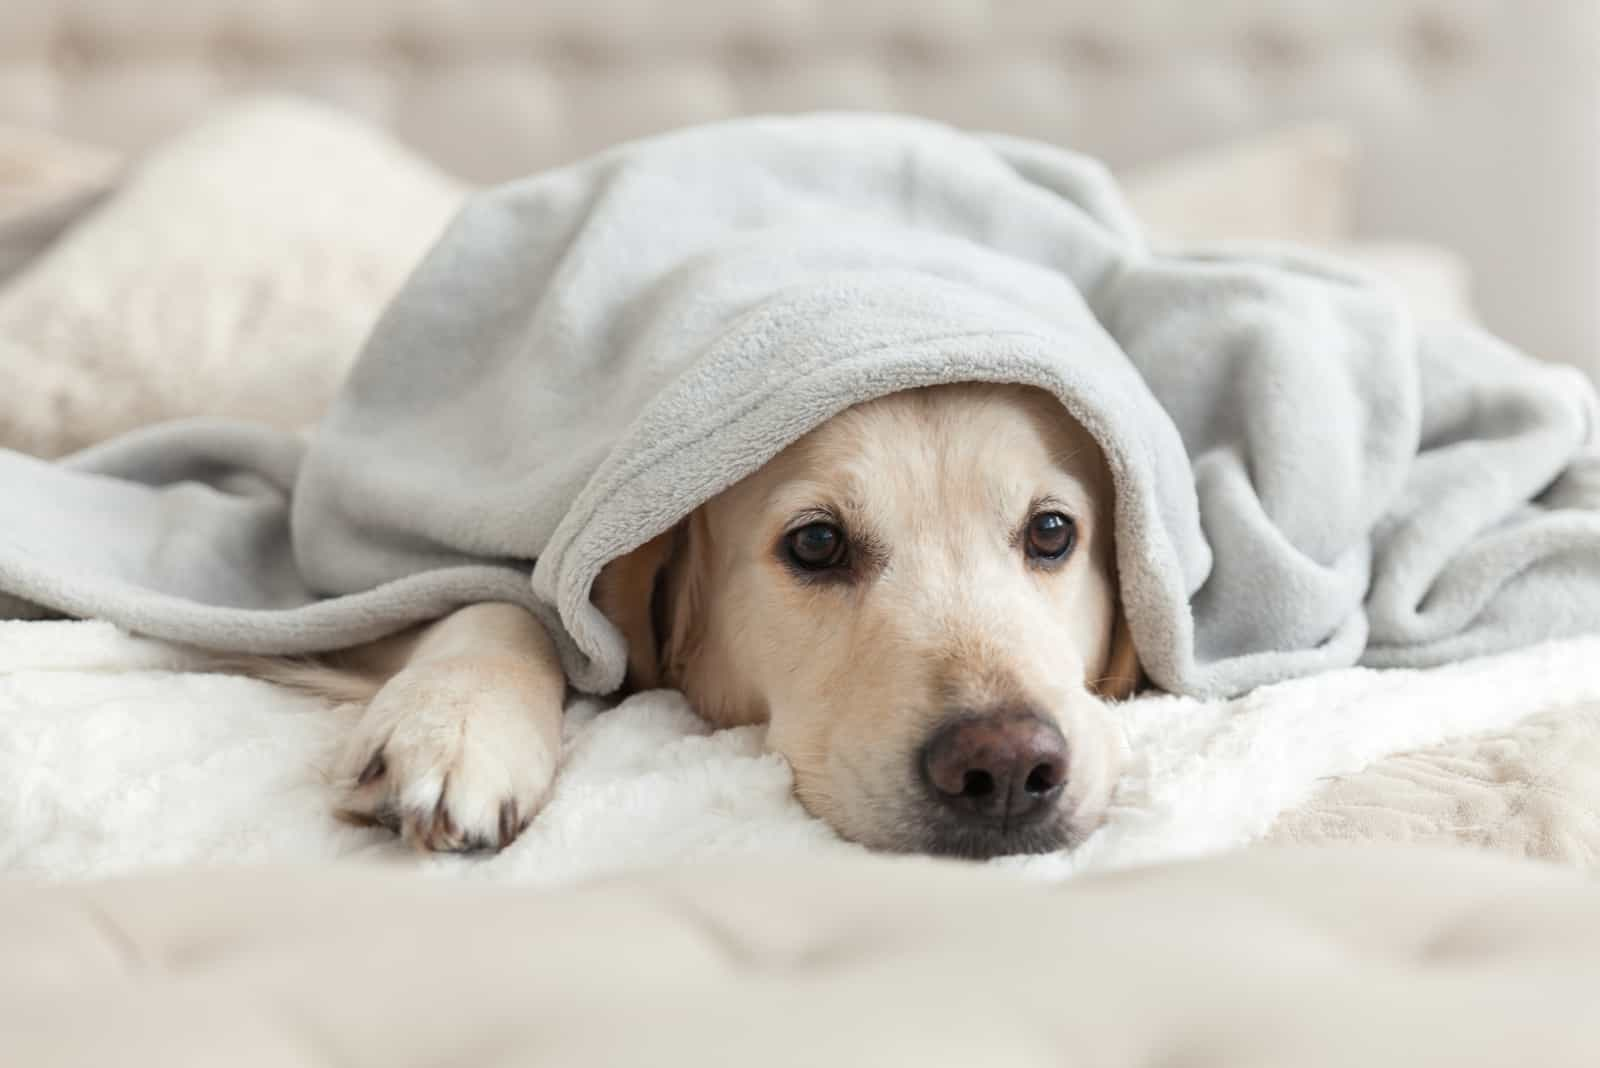 a beautiful white dog lies wrapped in a blanket